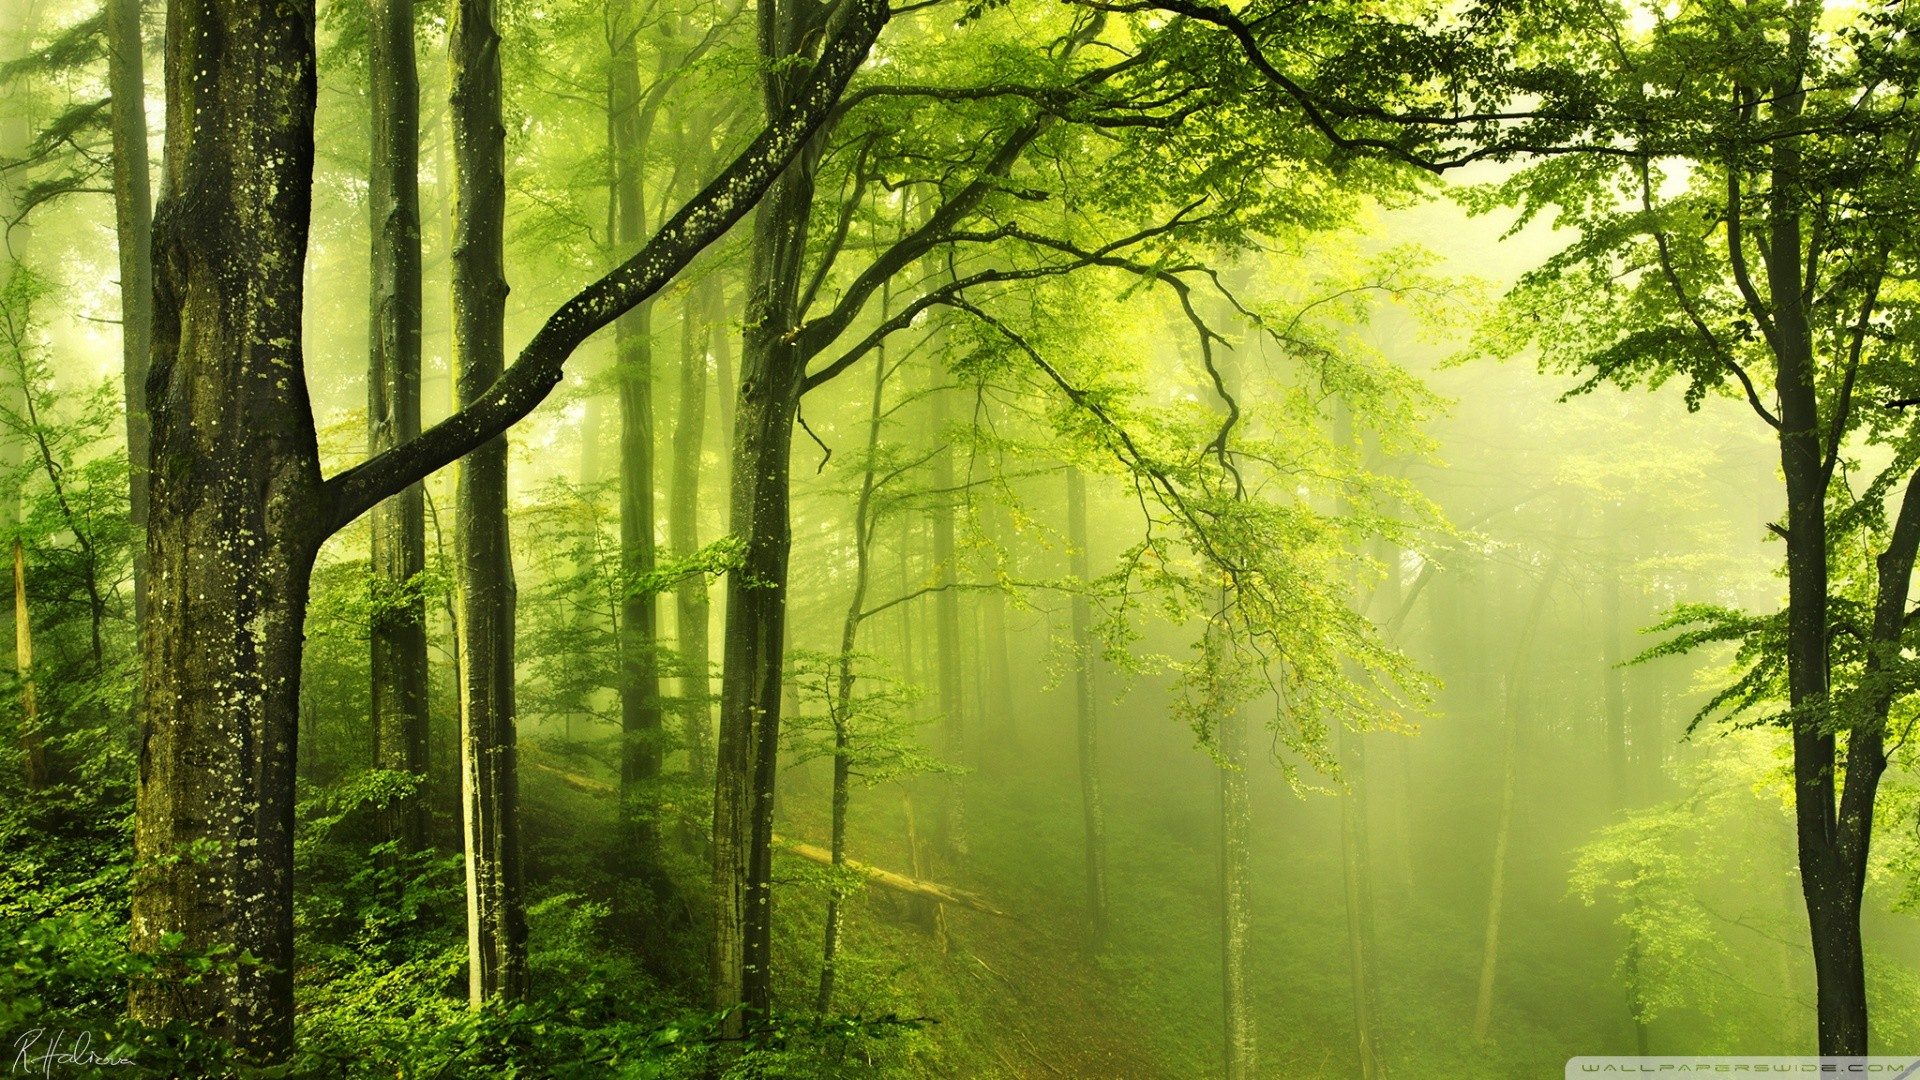 green forest wallpaper ·①